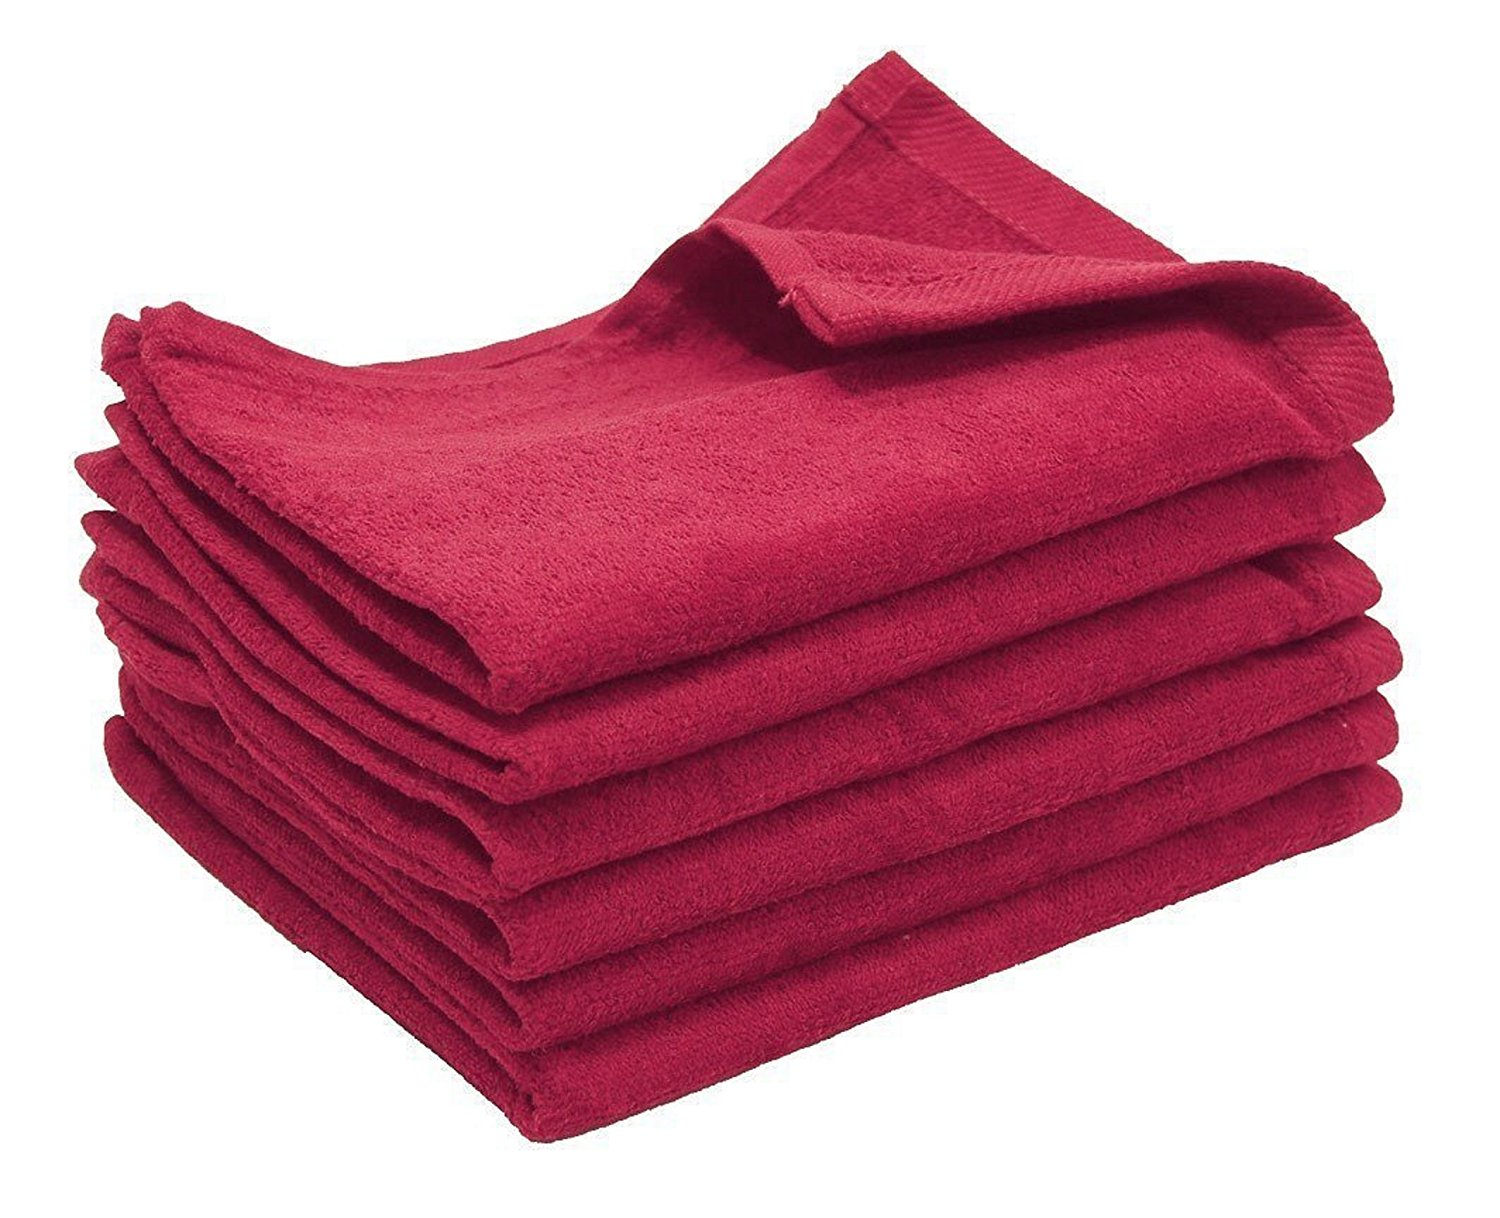 Big Deal! Cotton Terry Towel, RED Color,Low Cost Bulk Towels at Wholesale Prices! (24 Count Pack) (24, RED)